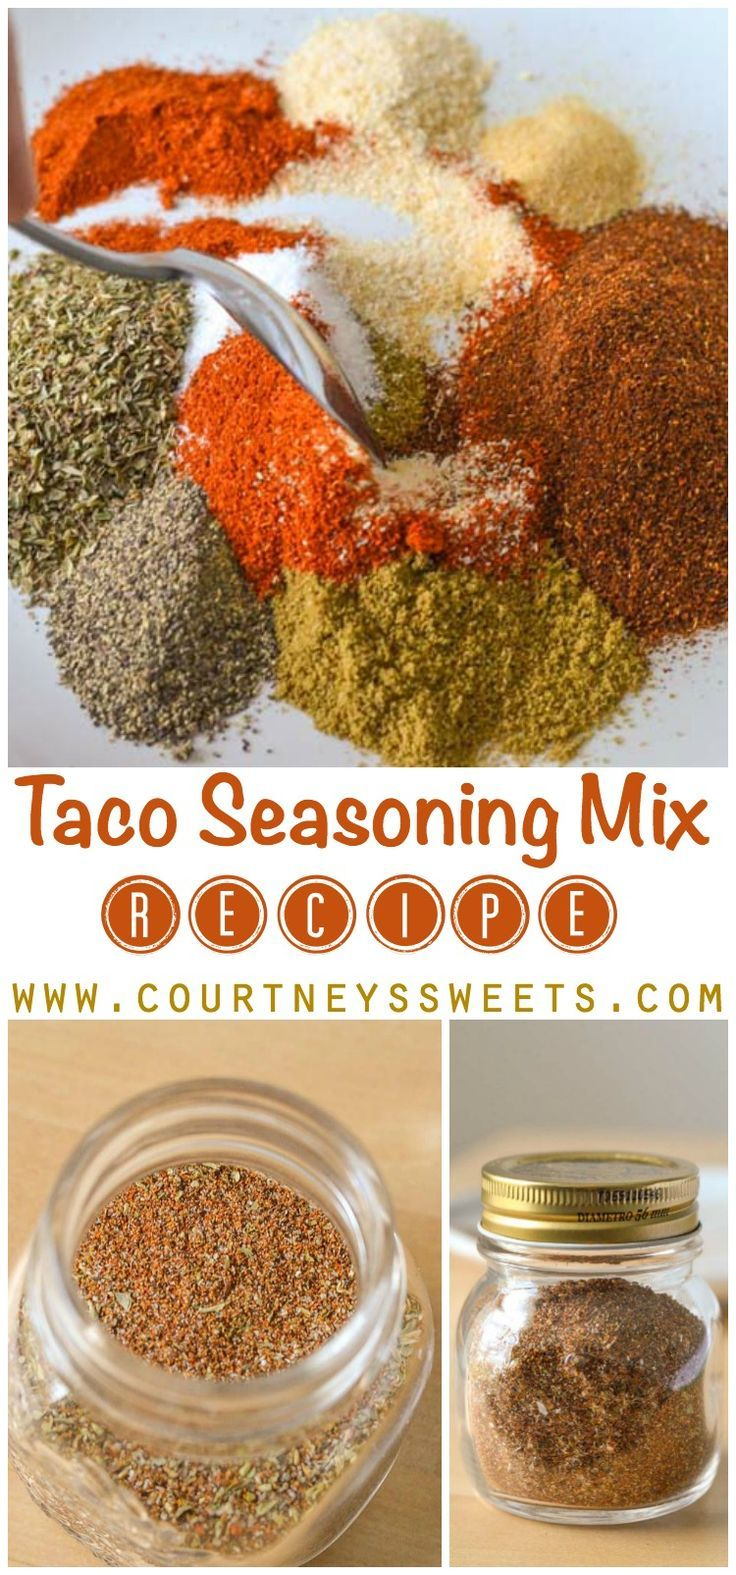 Taco Seasoning Mix #maketacoseasoning